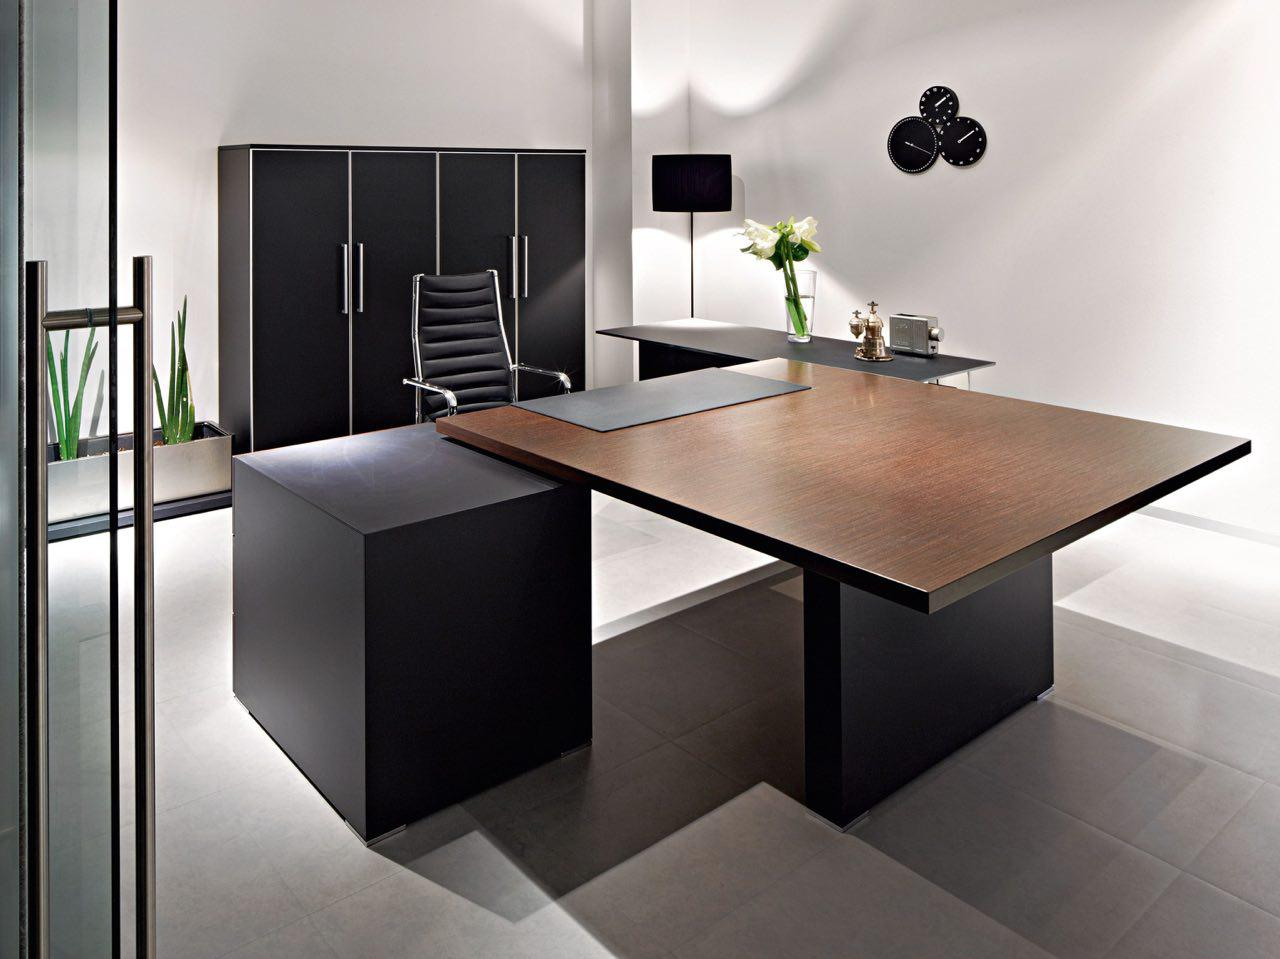 Ten facts about interior design - 10 interesting facts about interior design ...